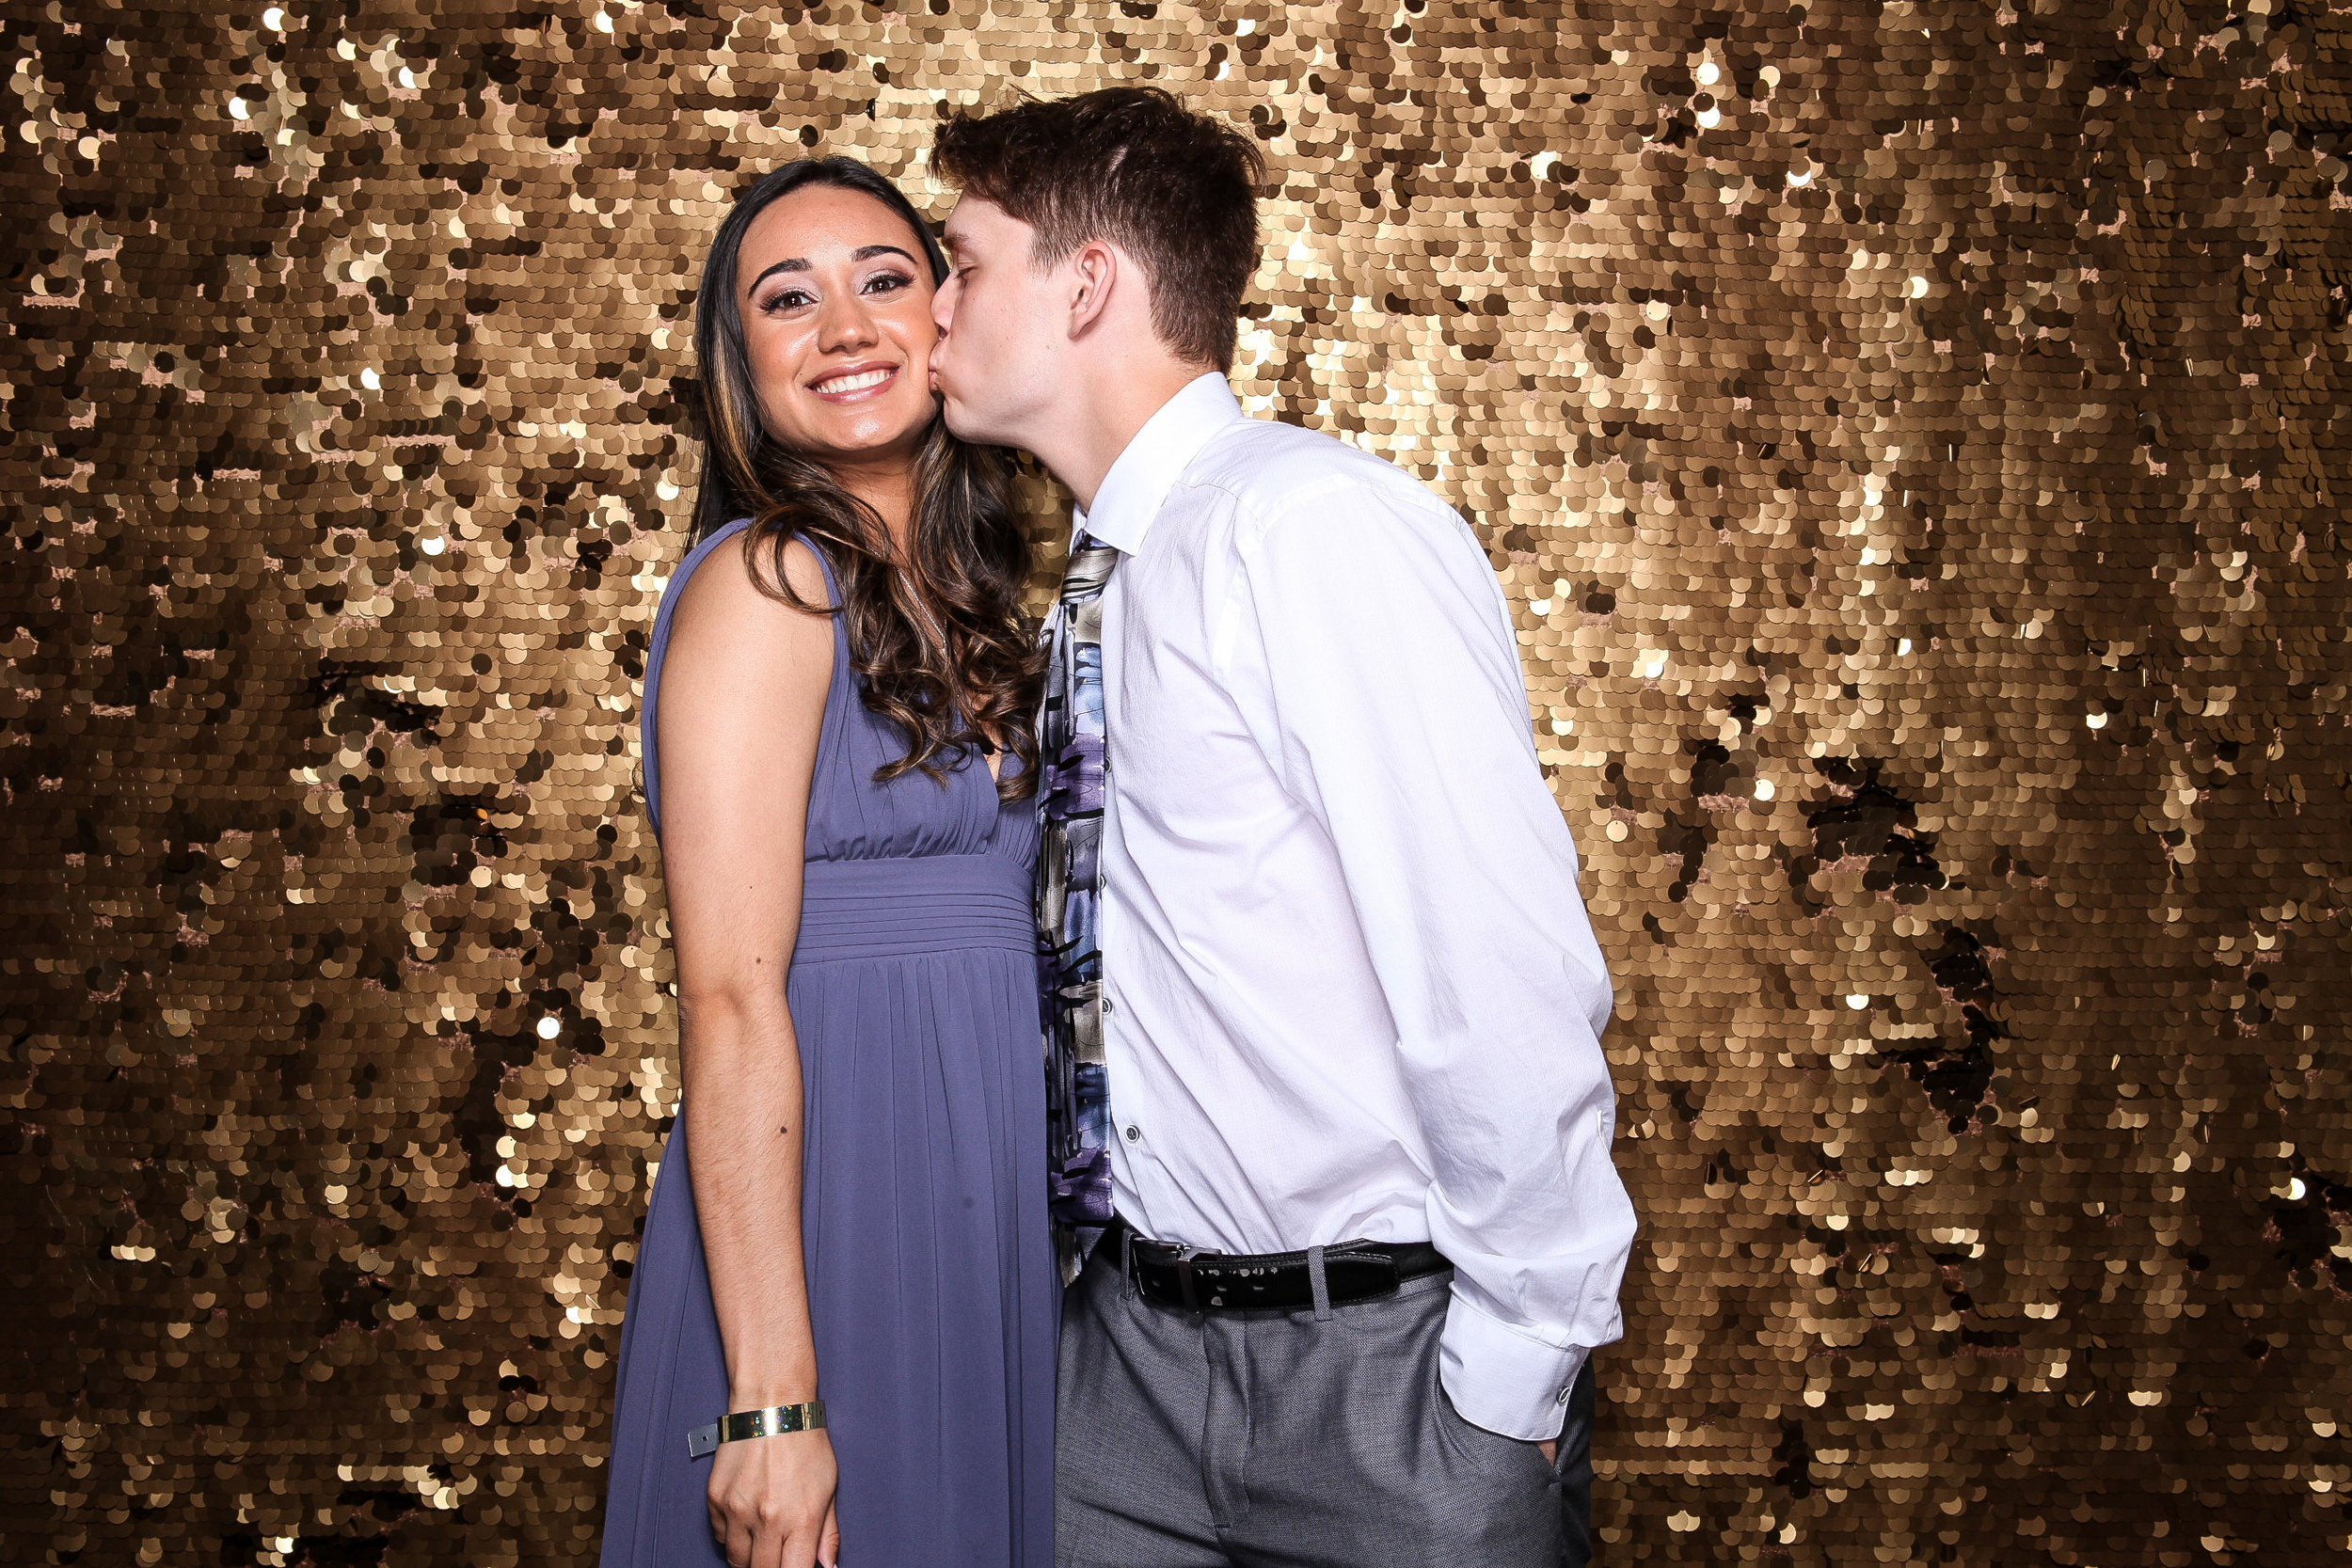 20190503_Adelphi_Senior_Formal-381.jpg